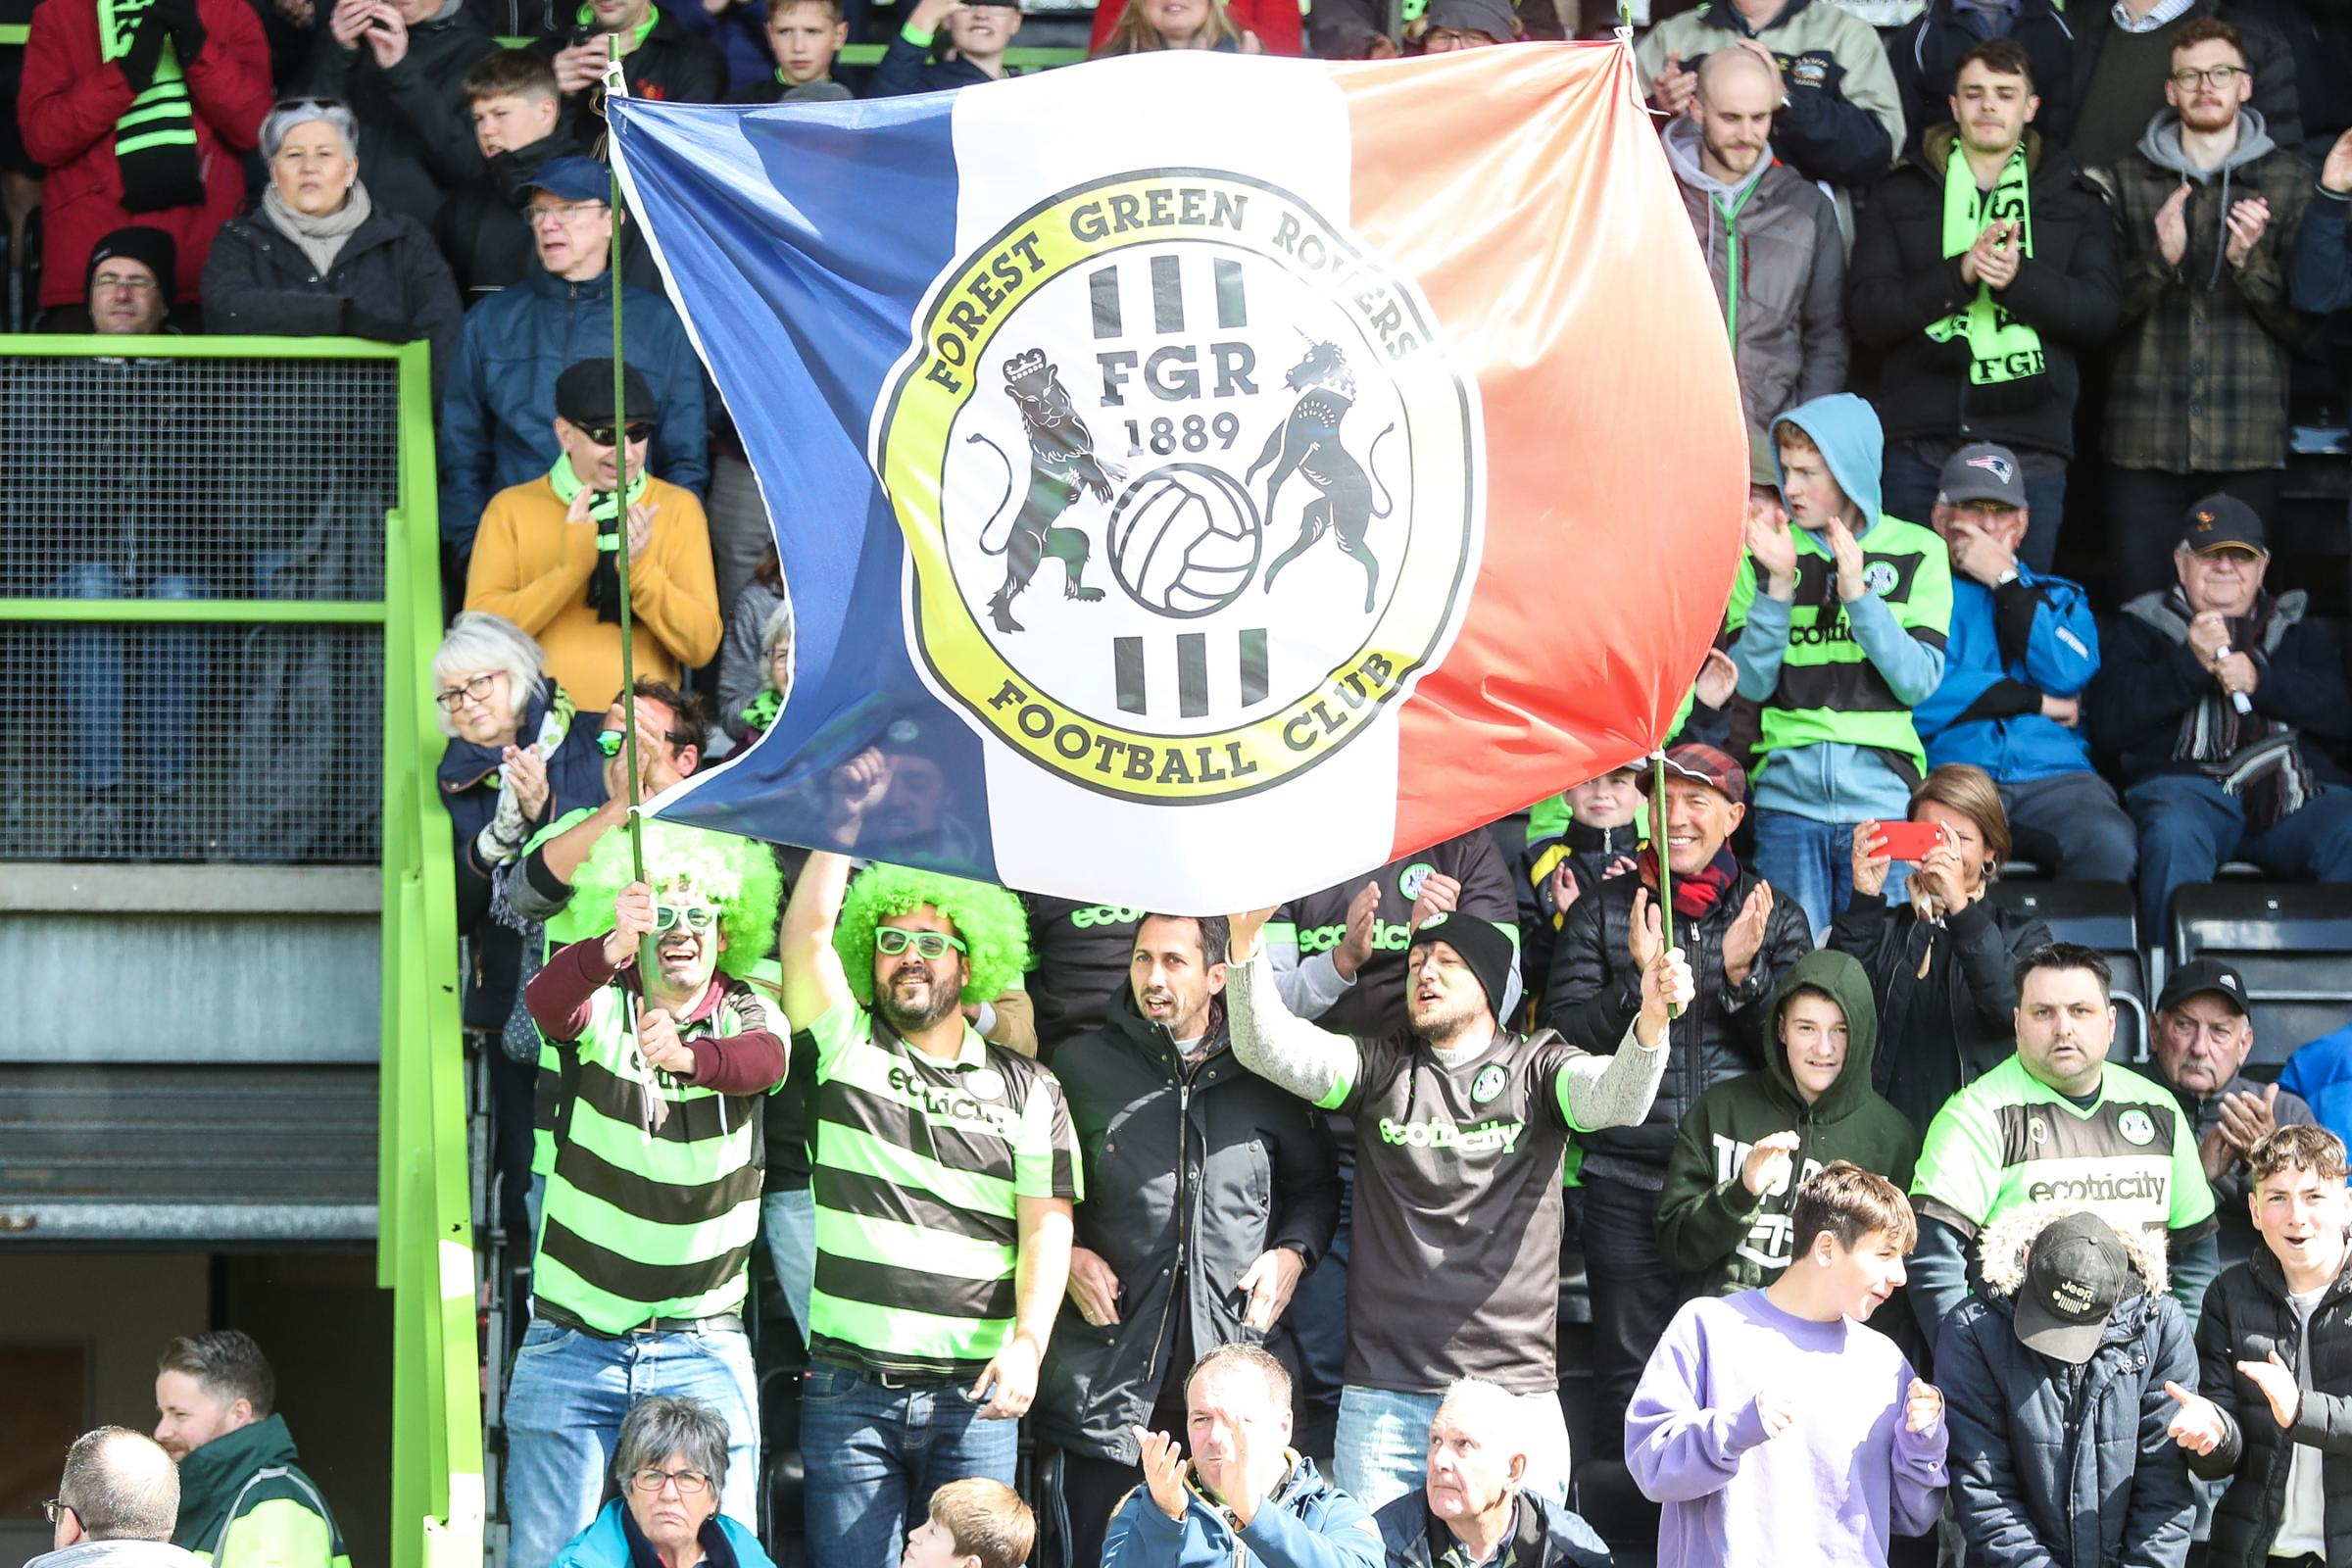 FGR fans during the EFL Sky Bet League 2 match between Forest Green Rovers and Exeter City at the New Lawn, Forest Green, United Kingdom on 4 May 2019.